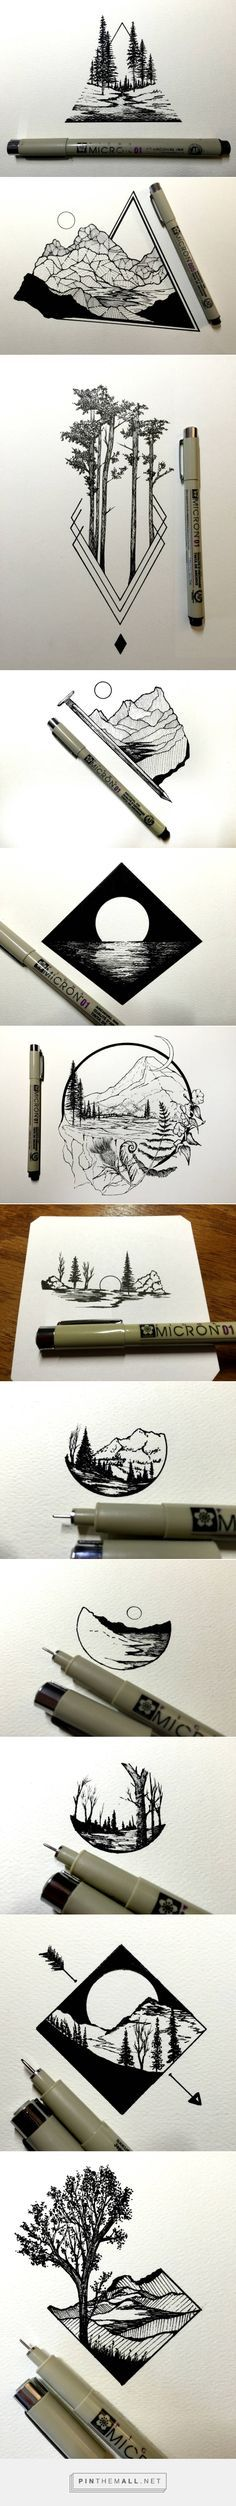 Dessins quotidiennes par Derek Myers - Fubiz Media ... - une image images groupées - Pin Them All